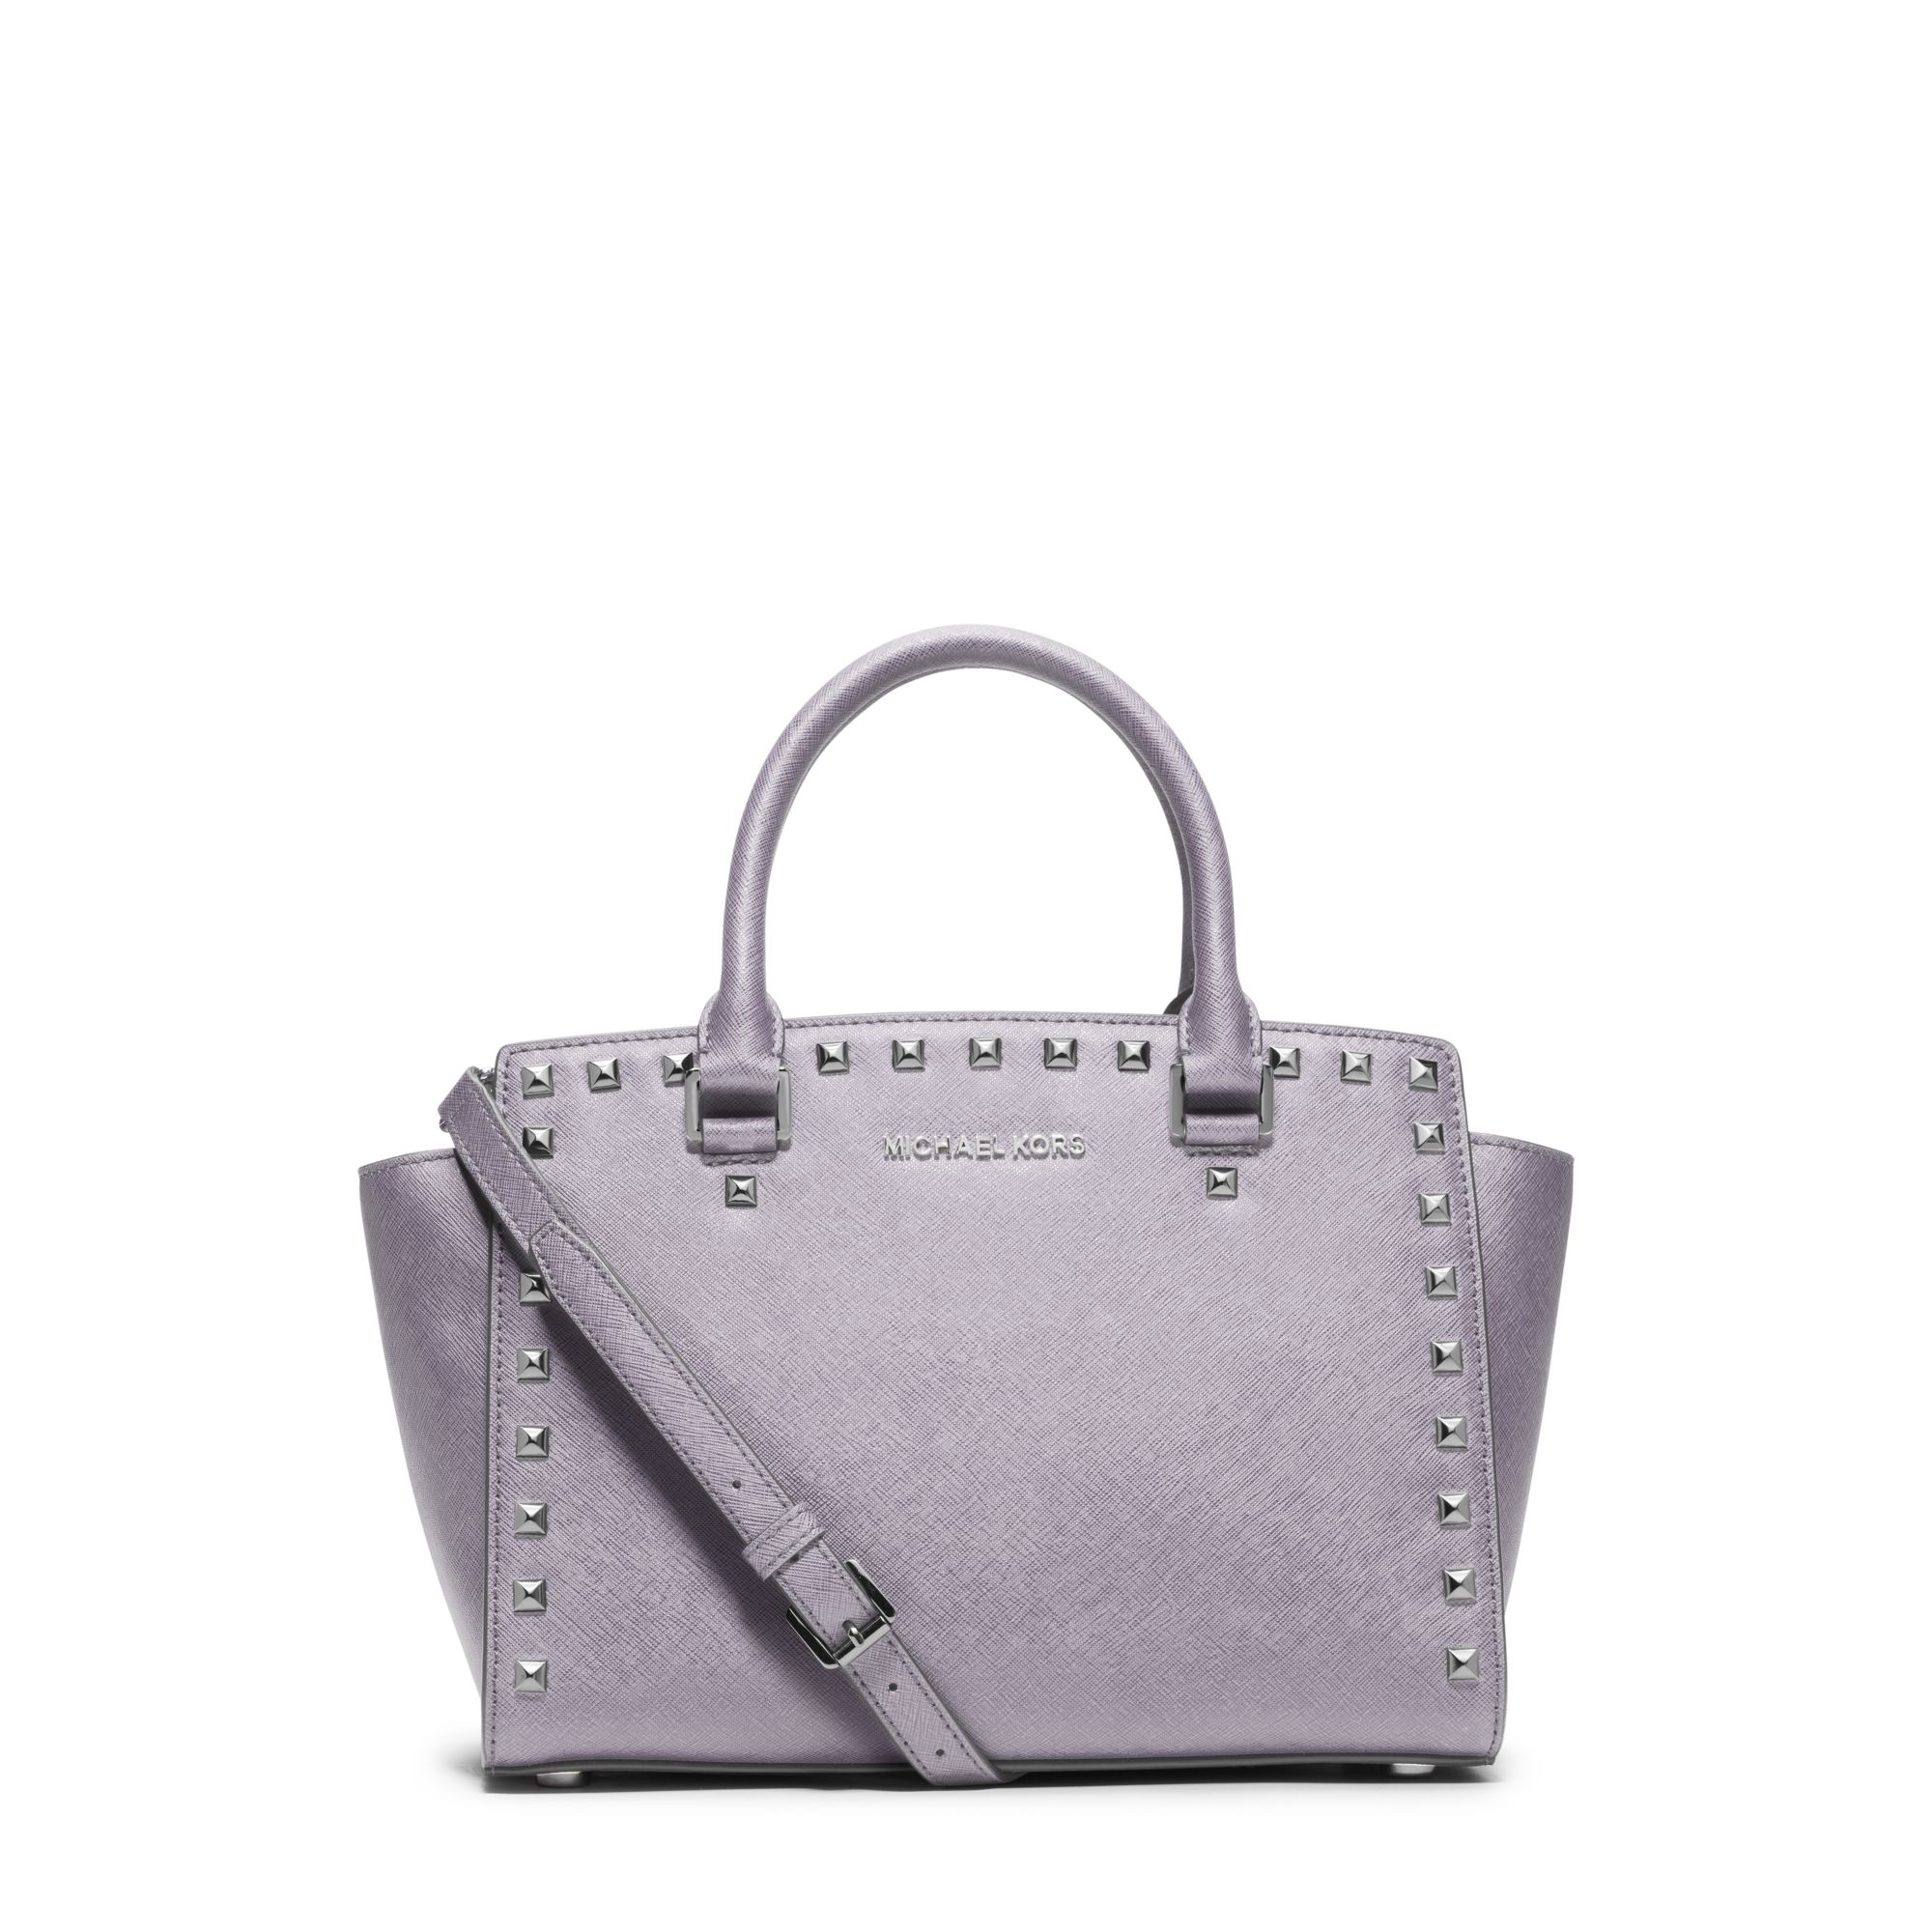 962939b5d8 Lyst - Michael Kors Selma Studded Saffiano Leather Satchel in Gray